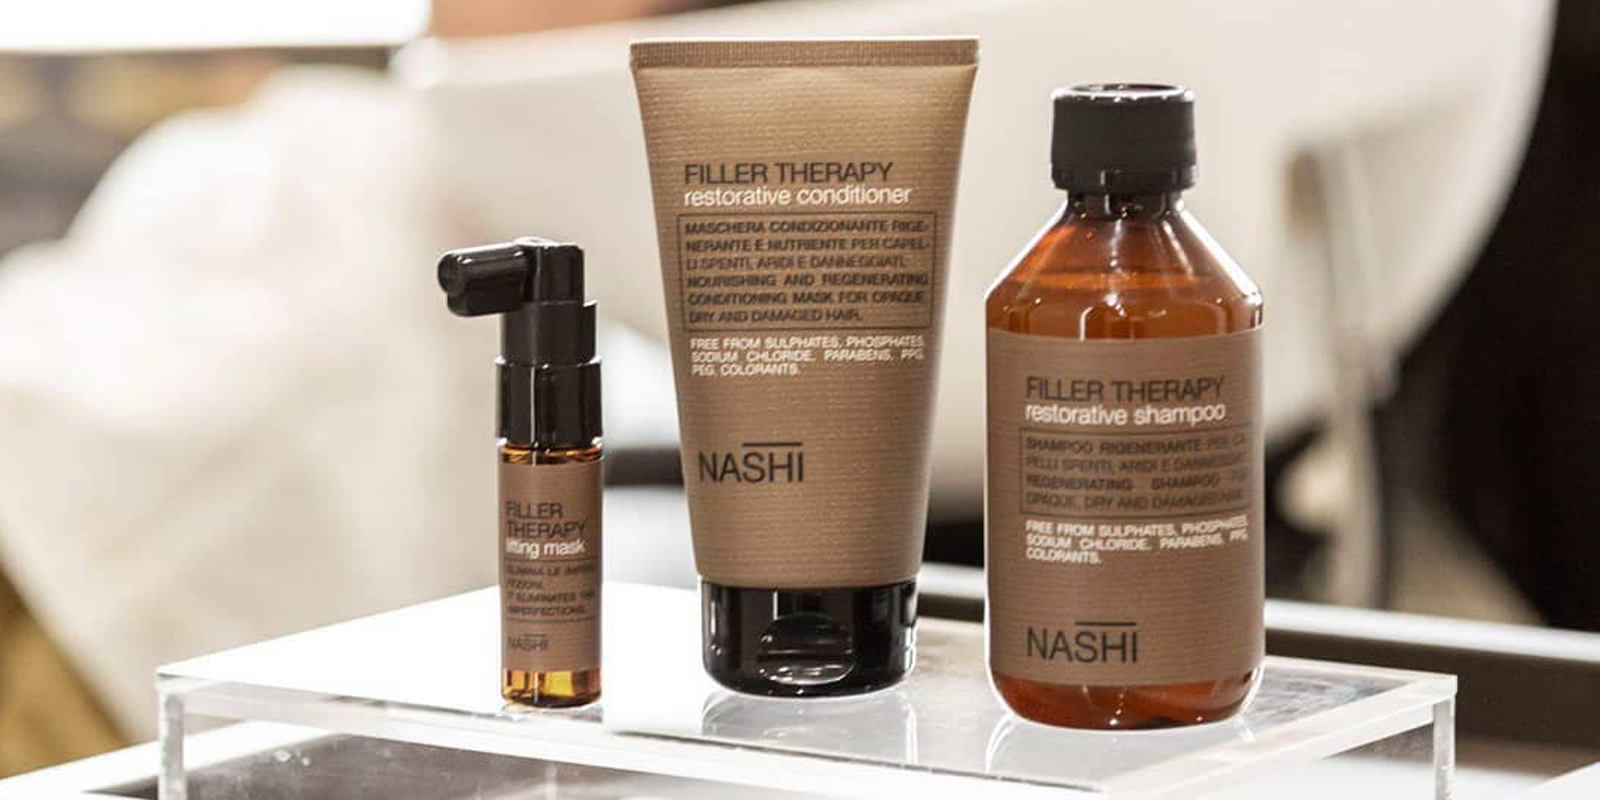 Nashi Piller Therapy